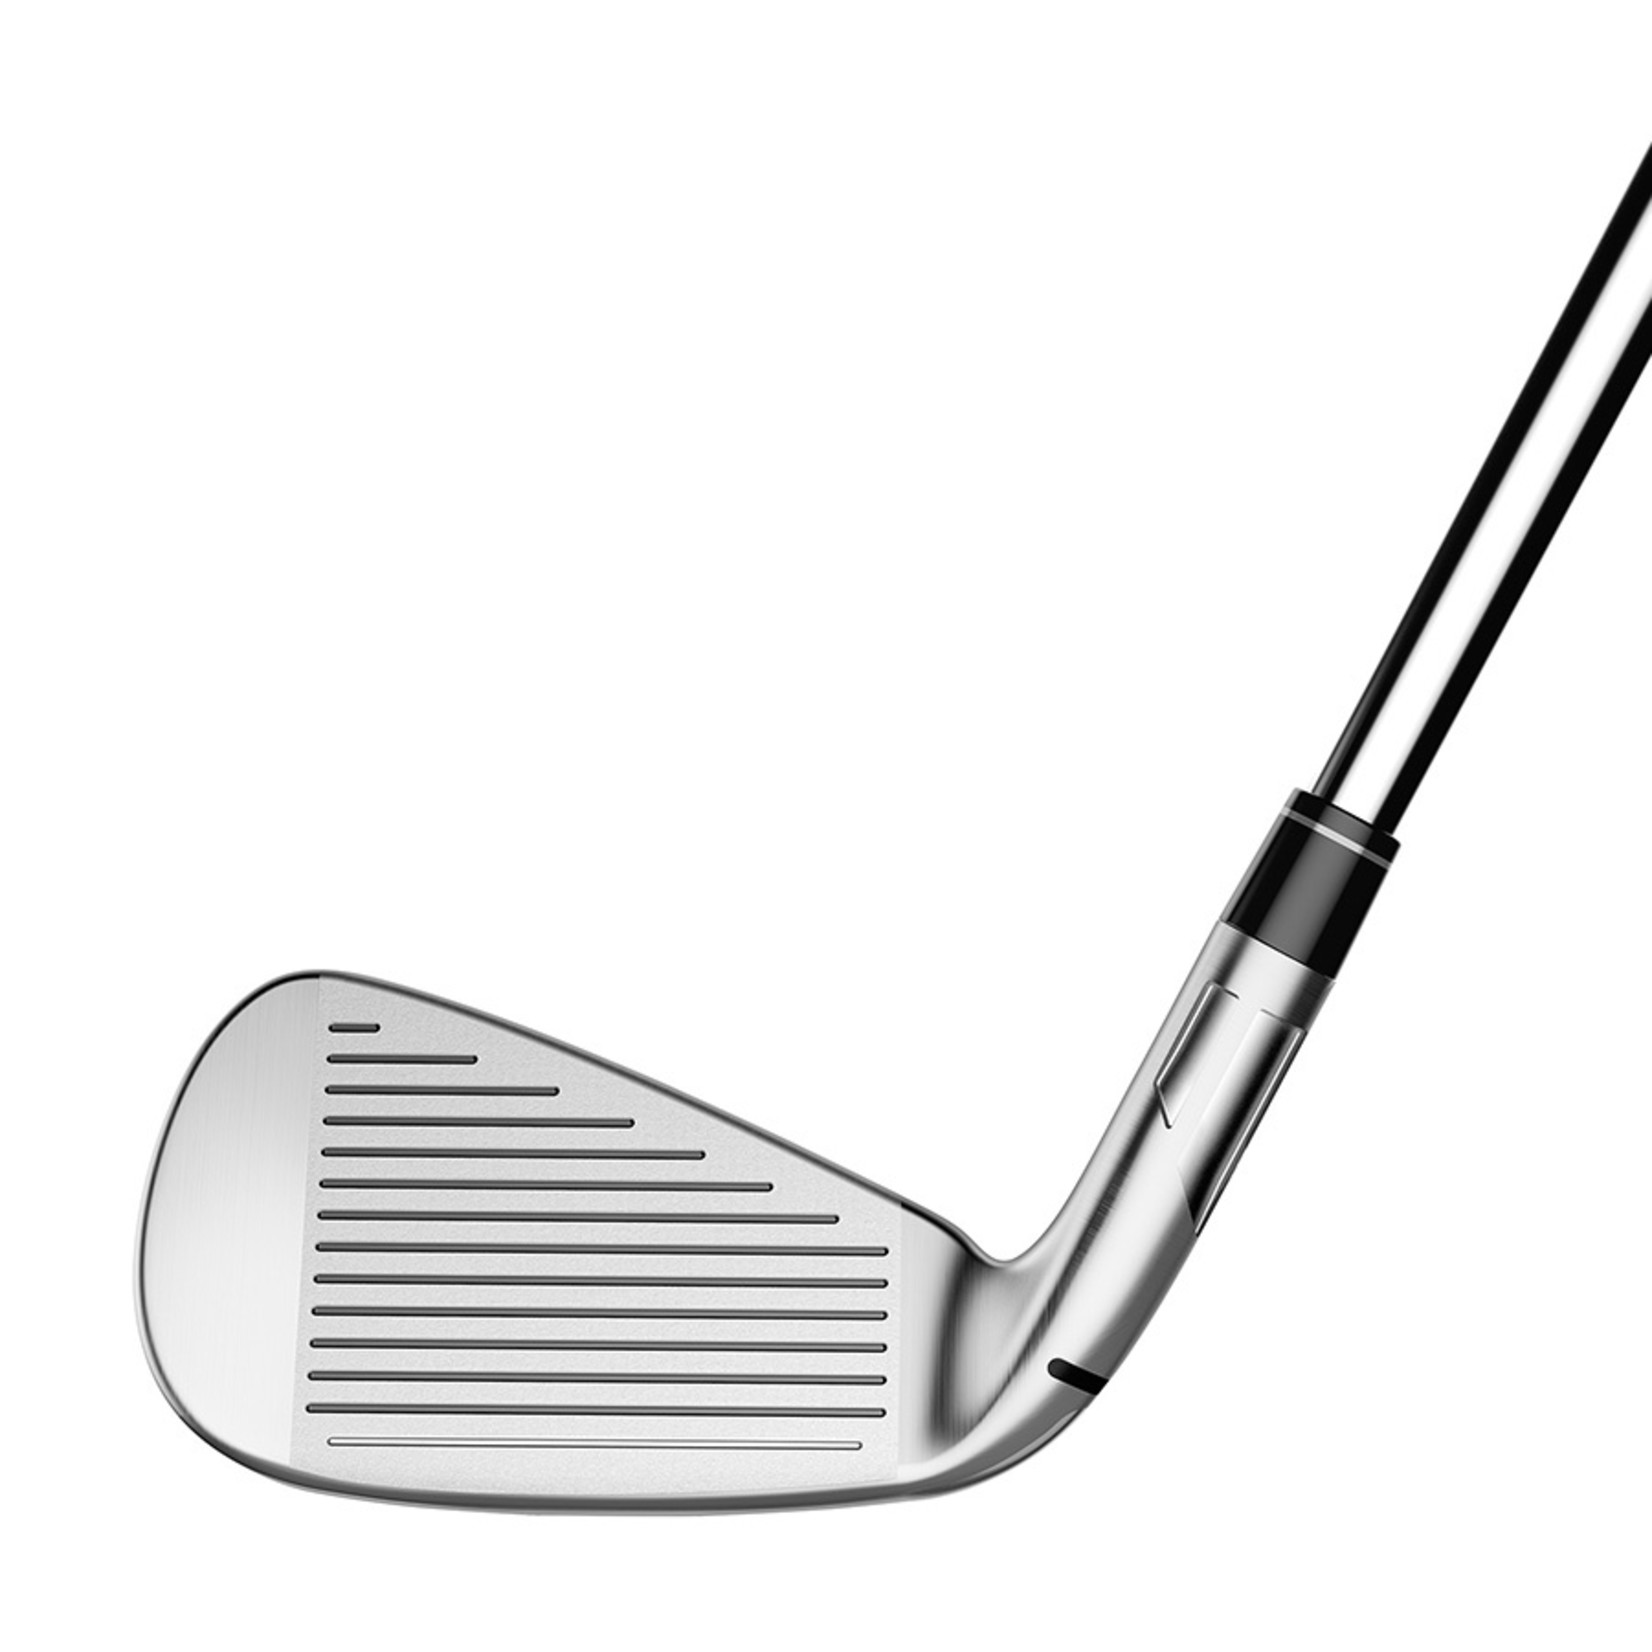 TaylorMade SIM2 Max Irons 7pc. - Steel Shafts